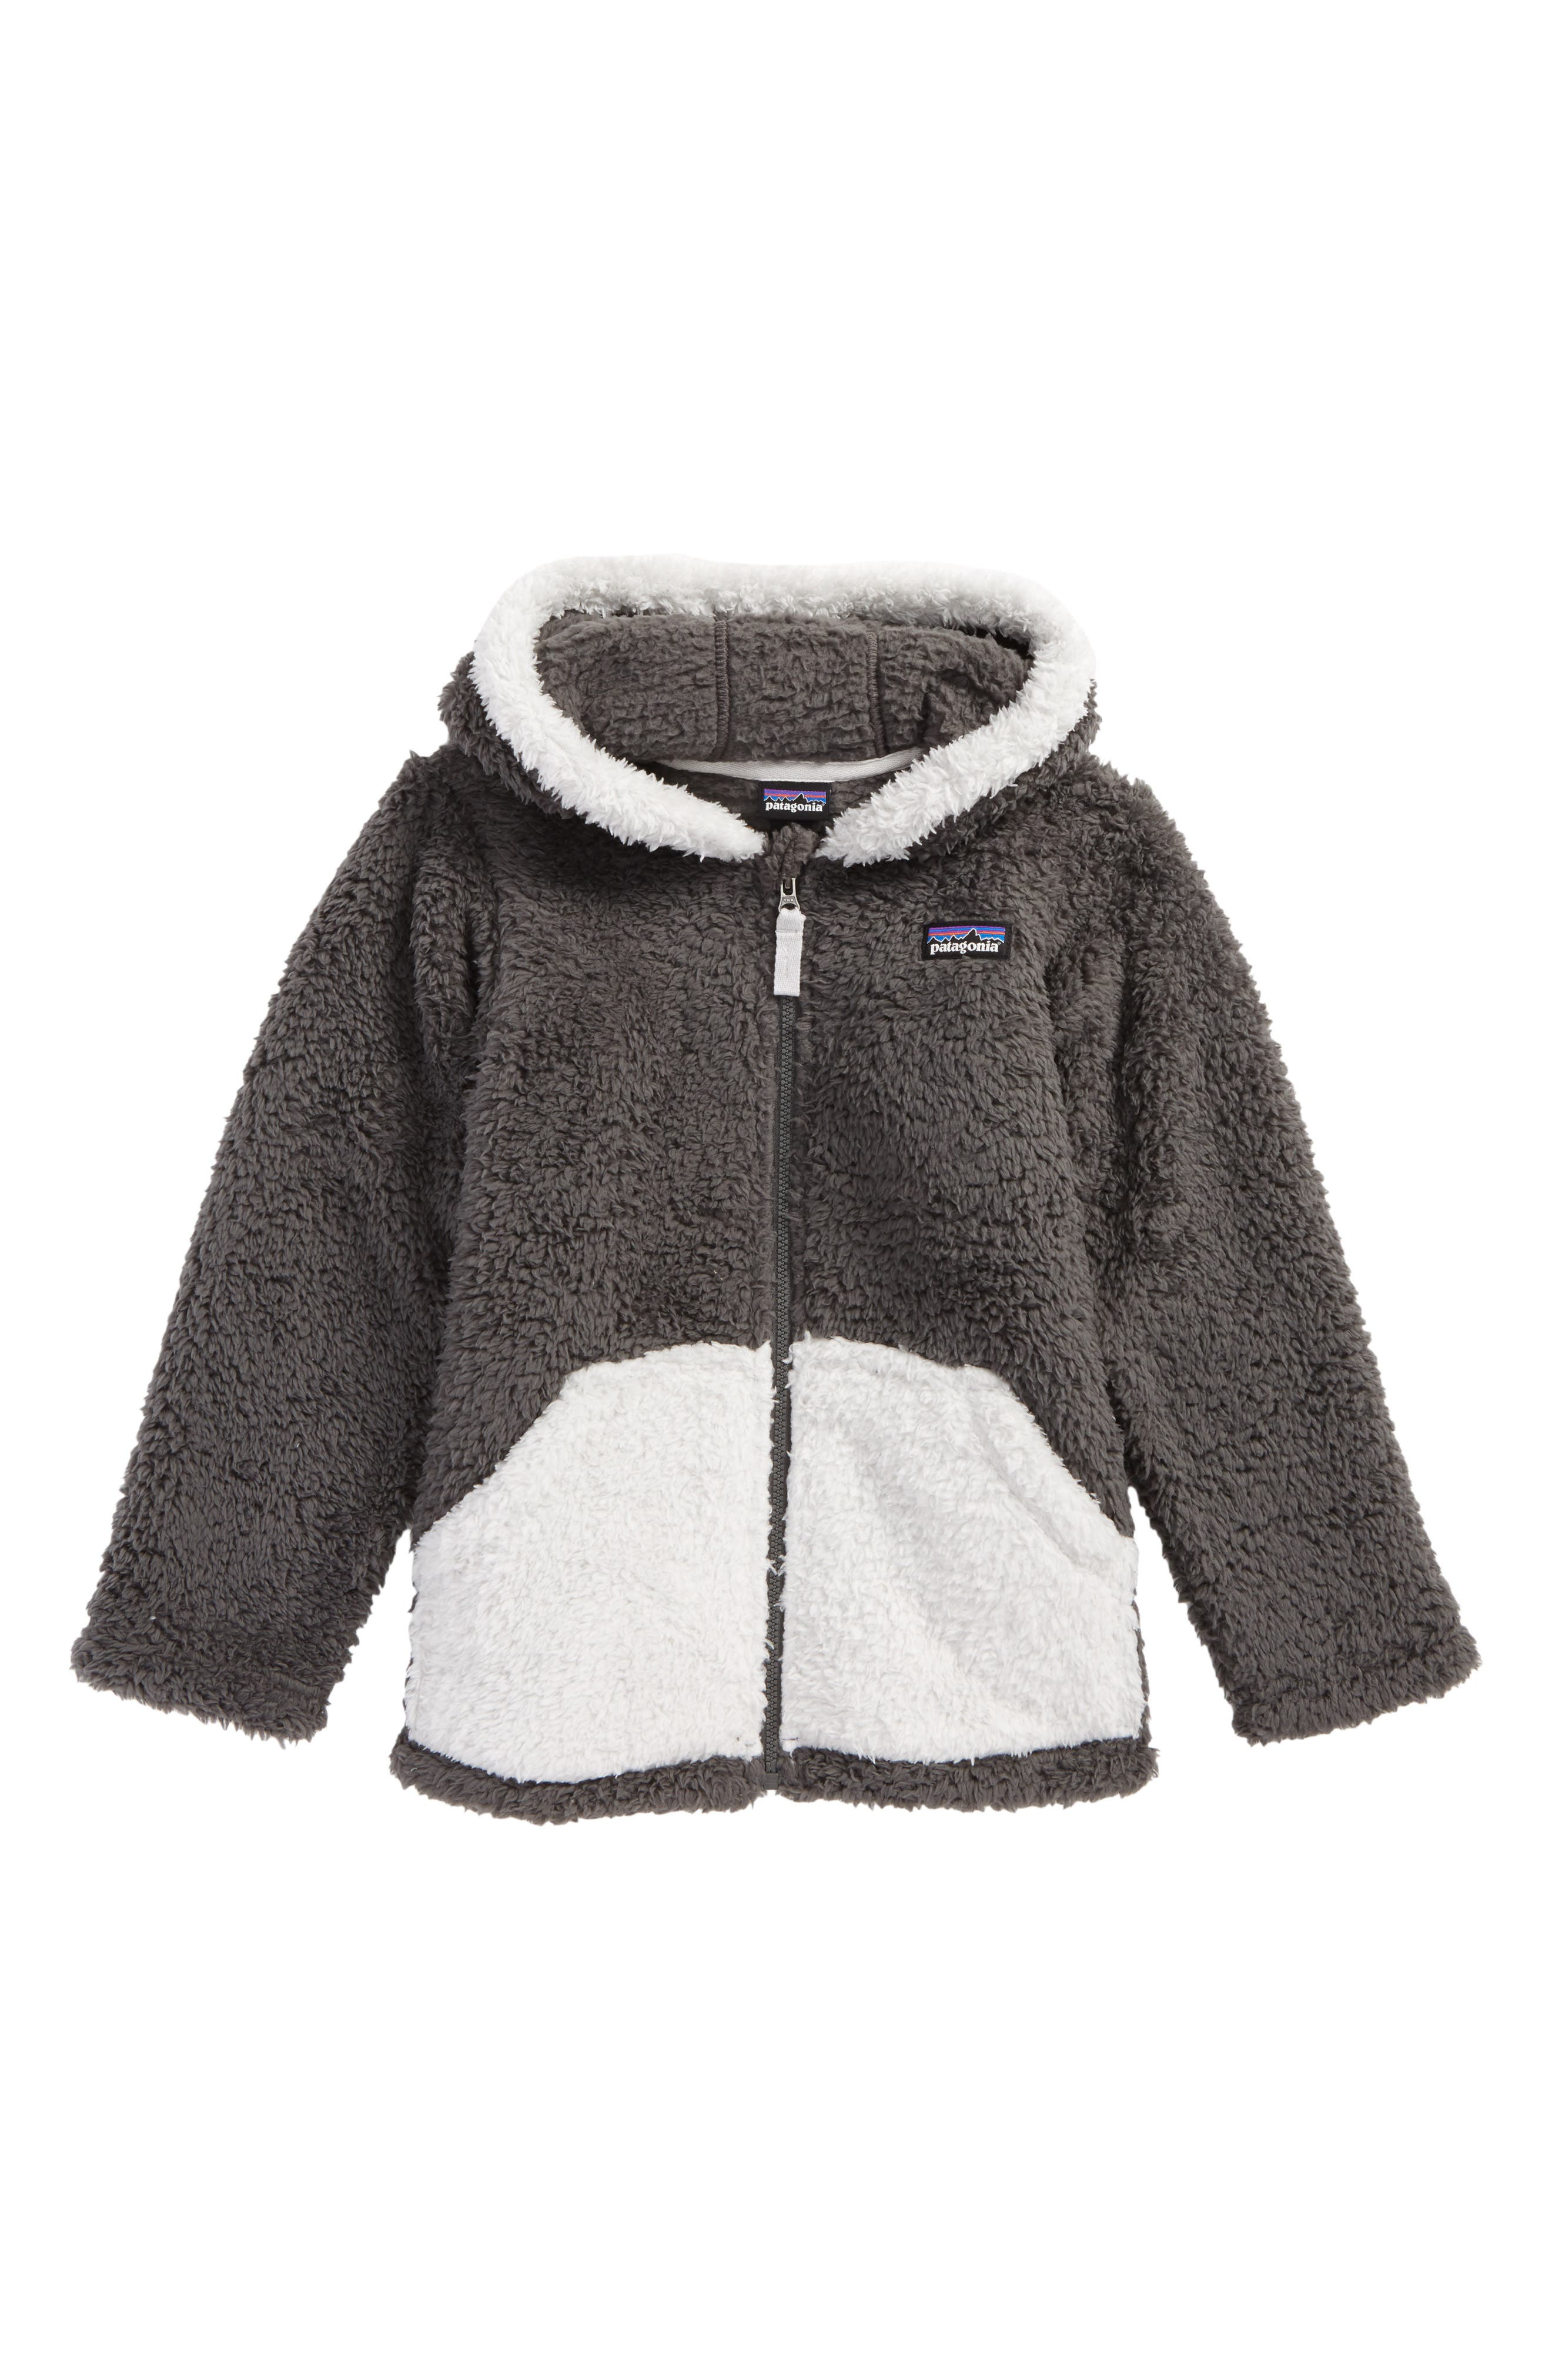 Furry Friends Zip Hoodie,                             Main thumbnail 1, color,                             FORGE GREY